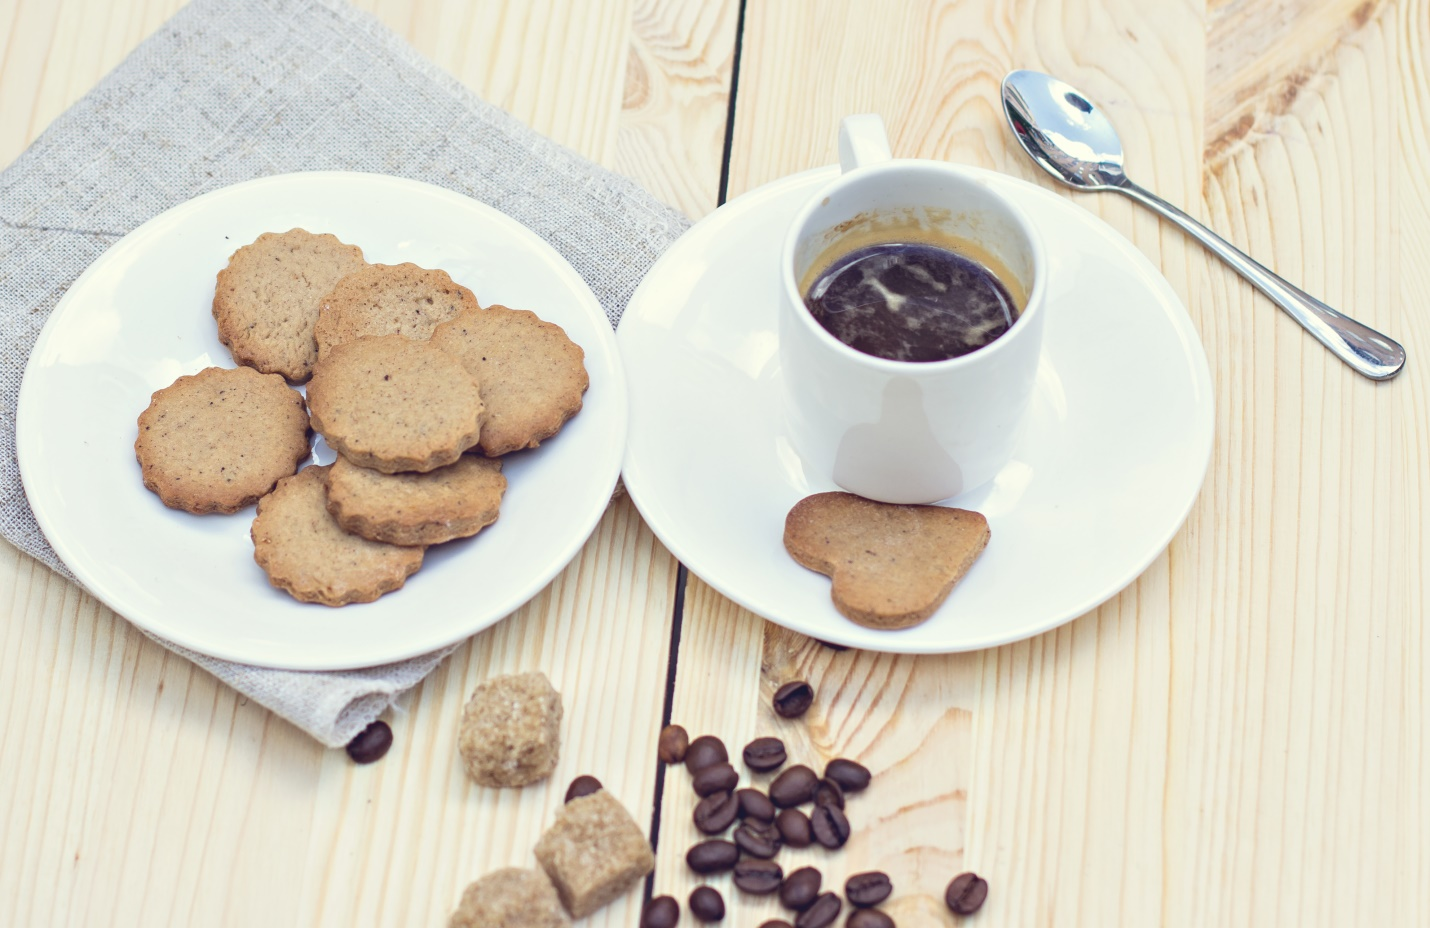 Festive Holiday Coffee Recipes with cookies